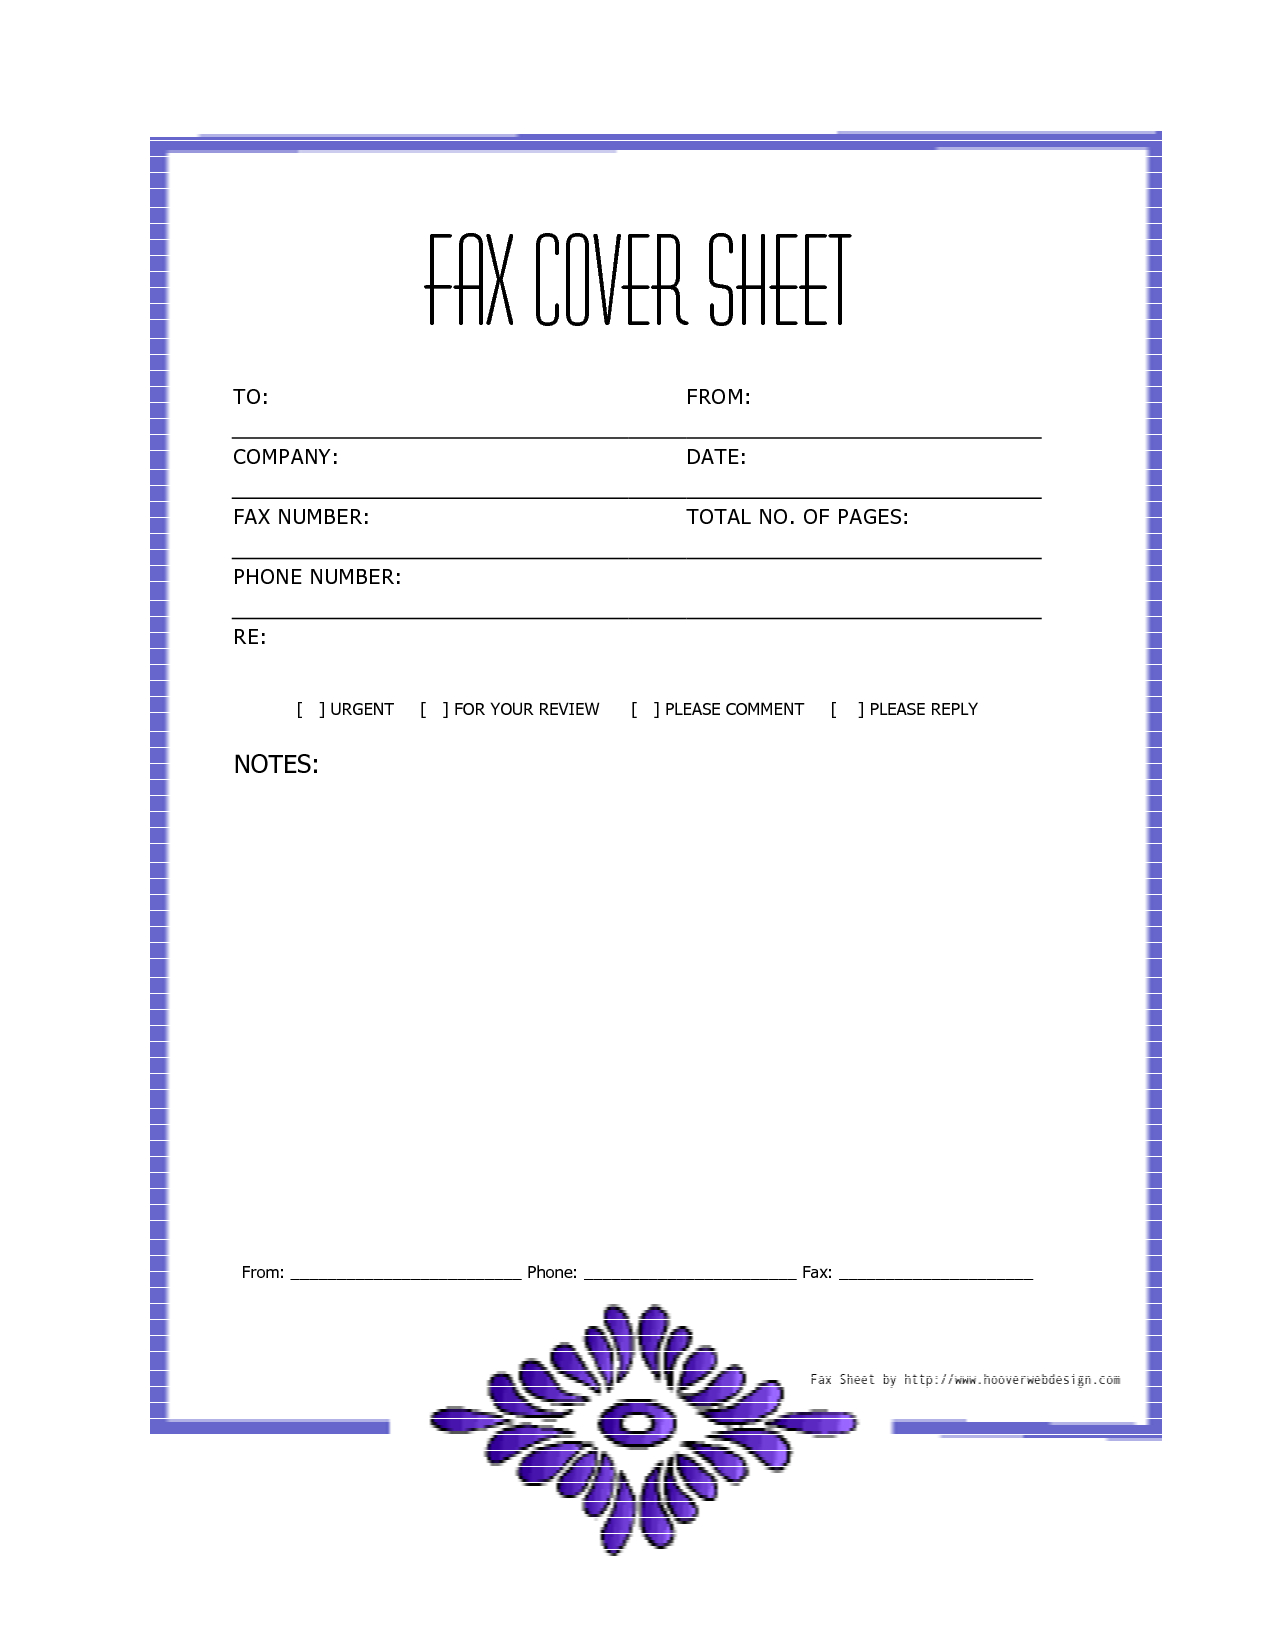 Microsoft Word Fax Cover Letter Template - Free Downloads Fax Covers Sheets